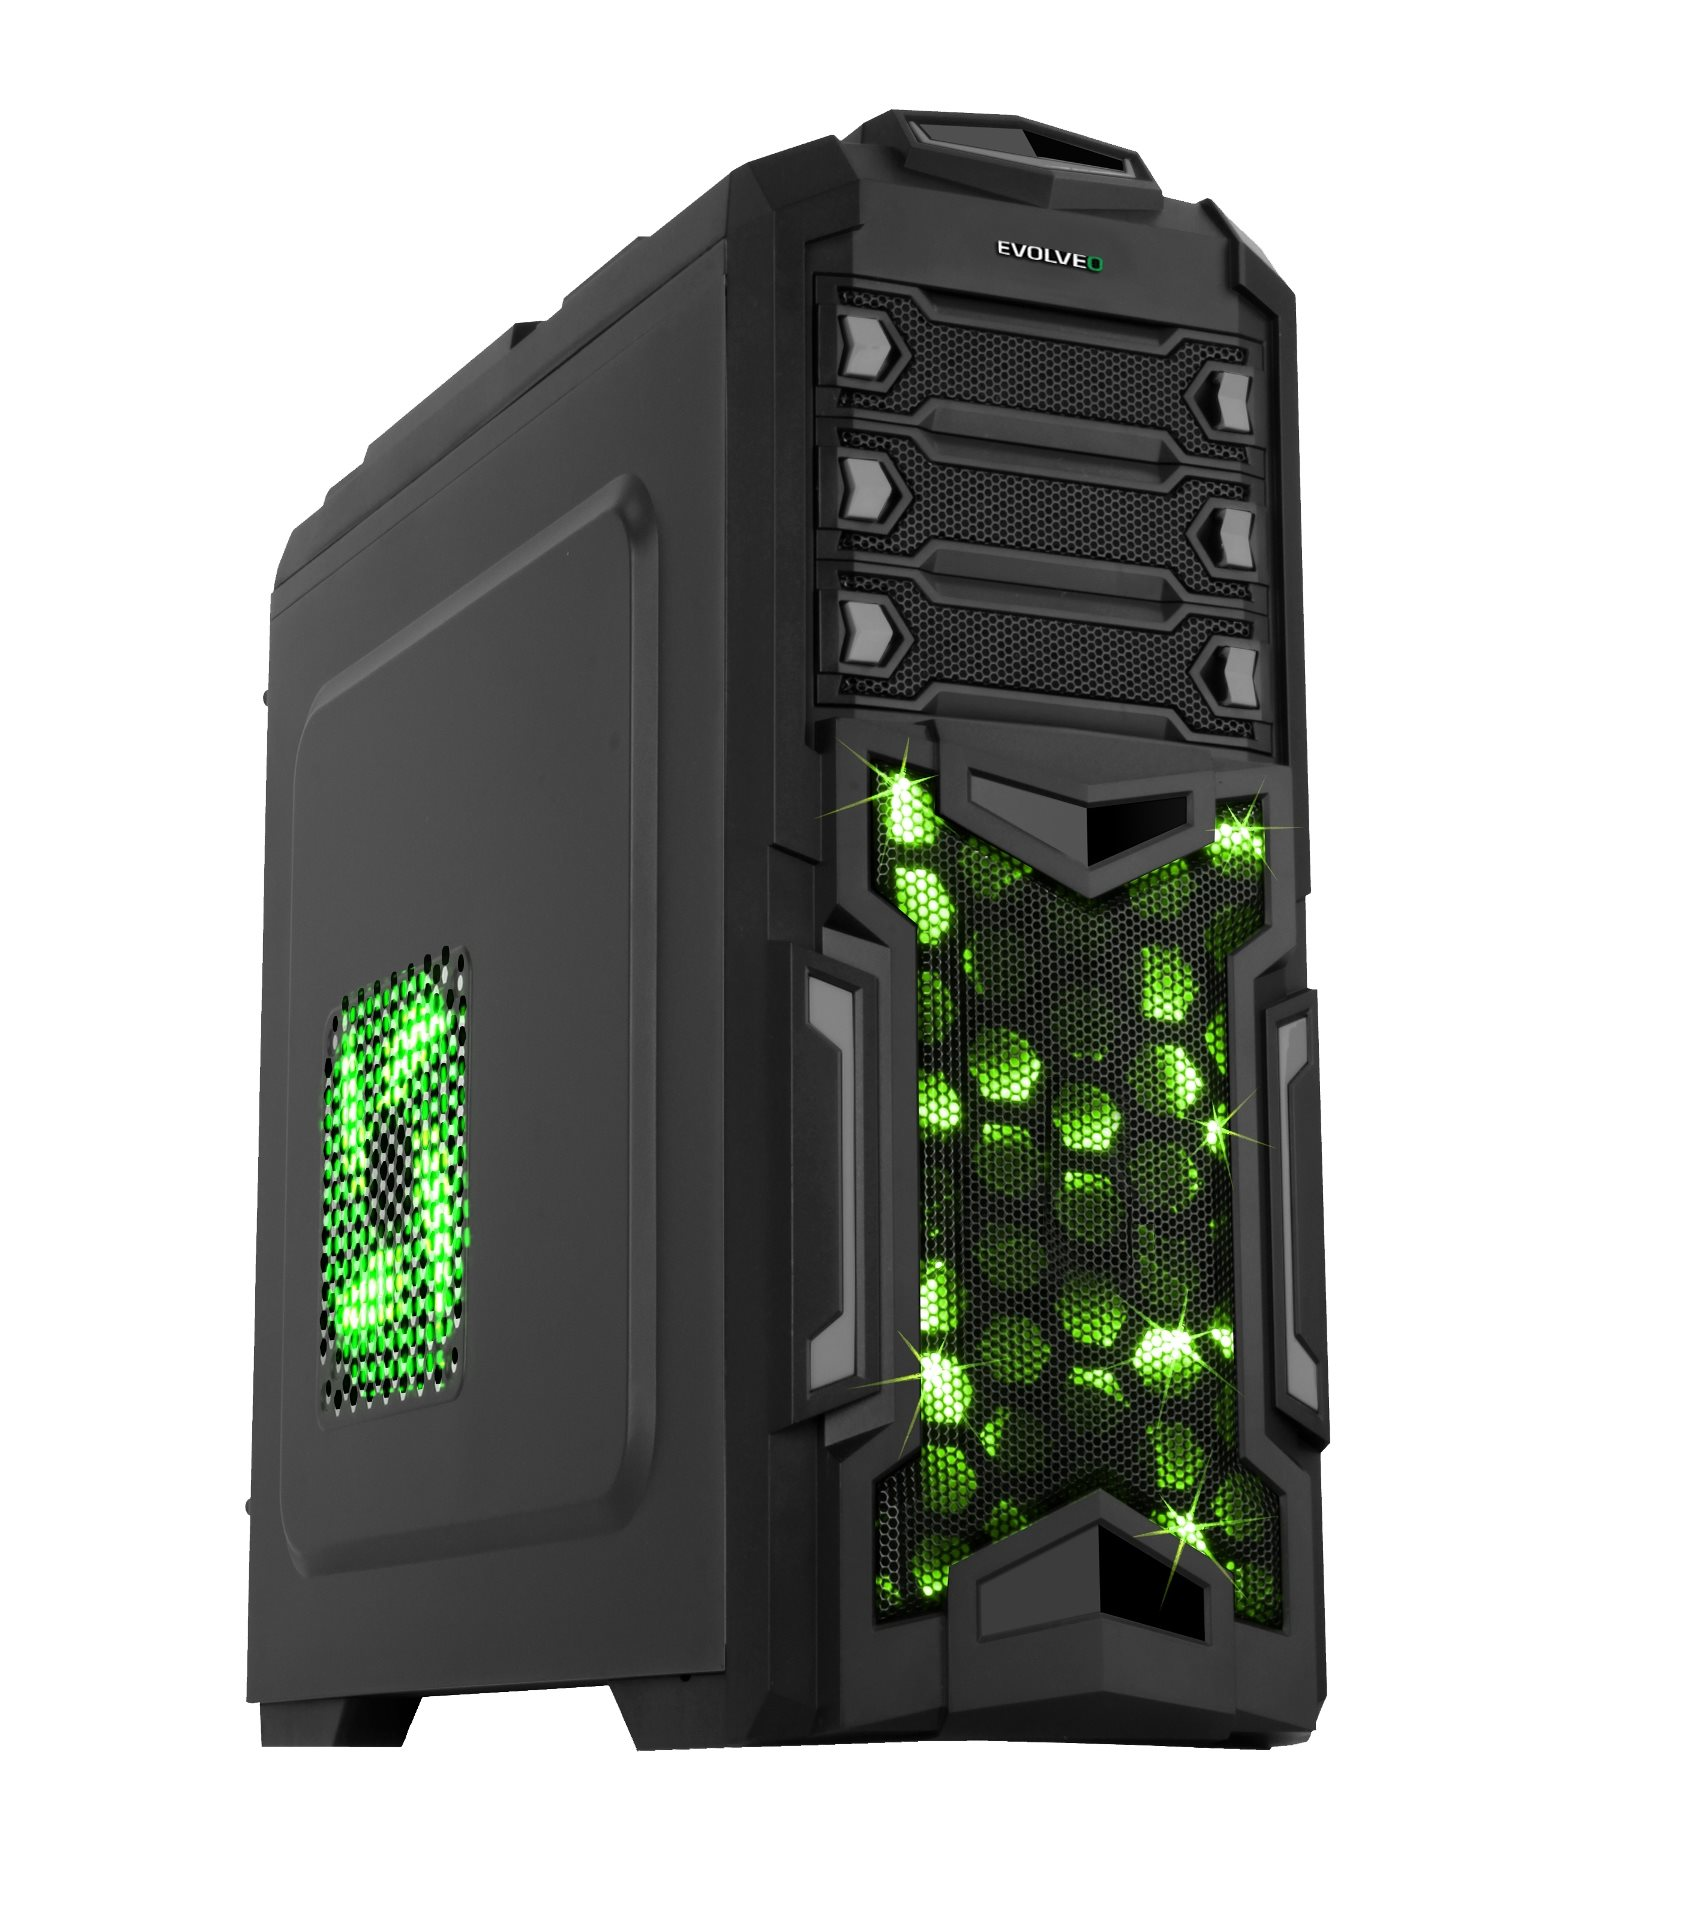 Intel Core i5-7400 Quad Core,DDR4 RAM 8GB,HDD 1000GB,Geforce GTX 1050 GAMING 2GB